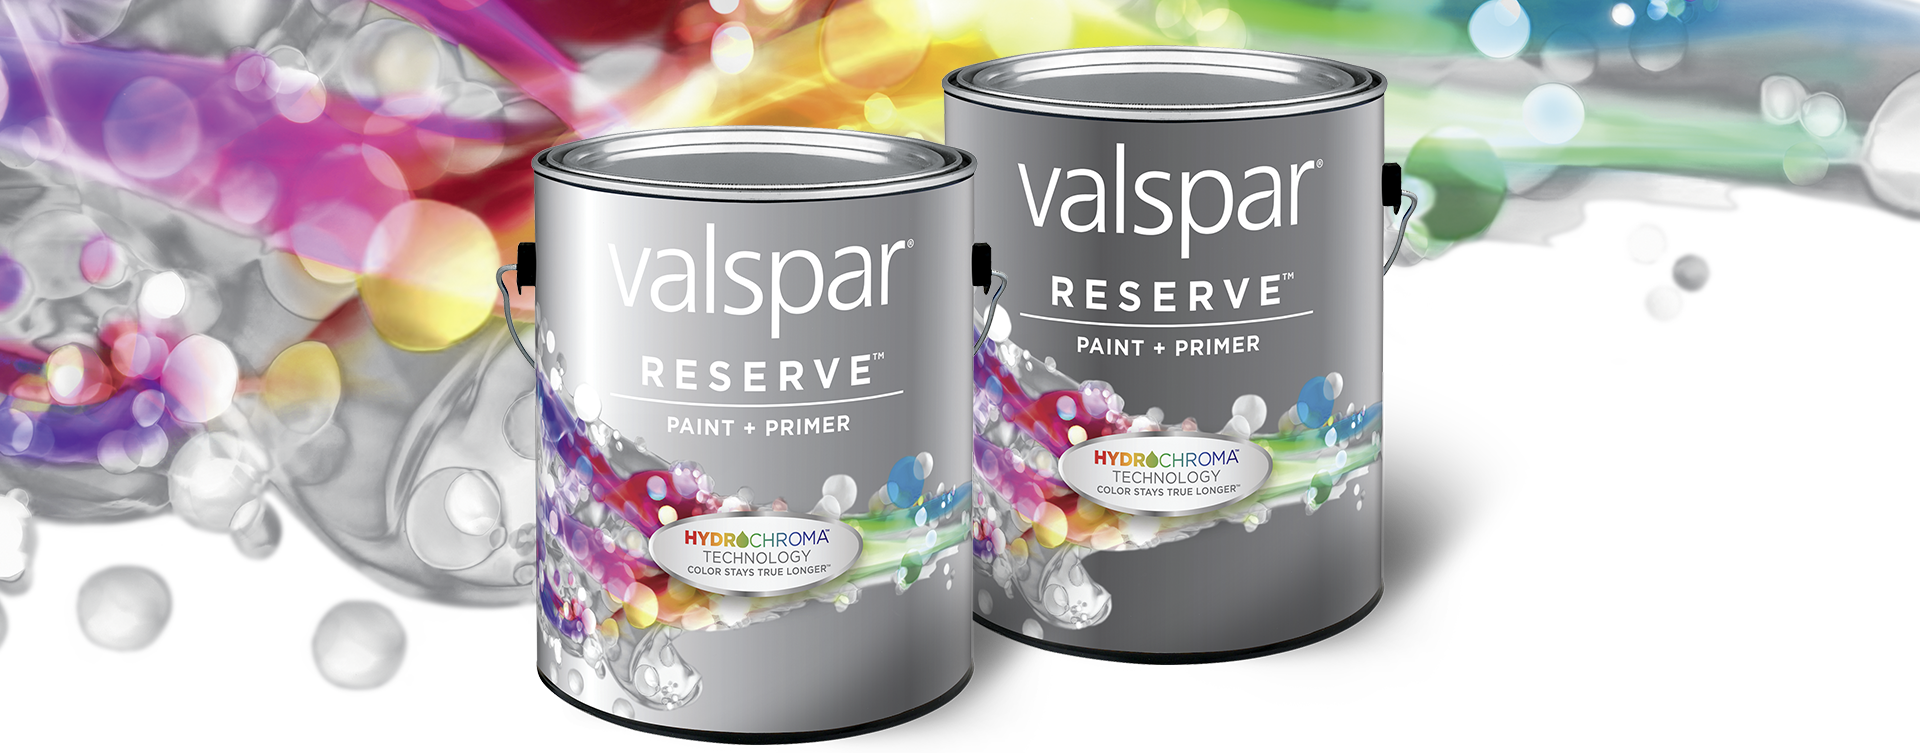 Valspar Spray Paint Review | Valspar Paint | Valspar Paint Coupons Printable